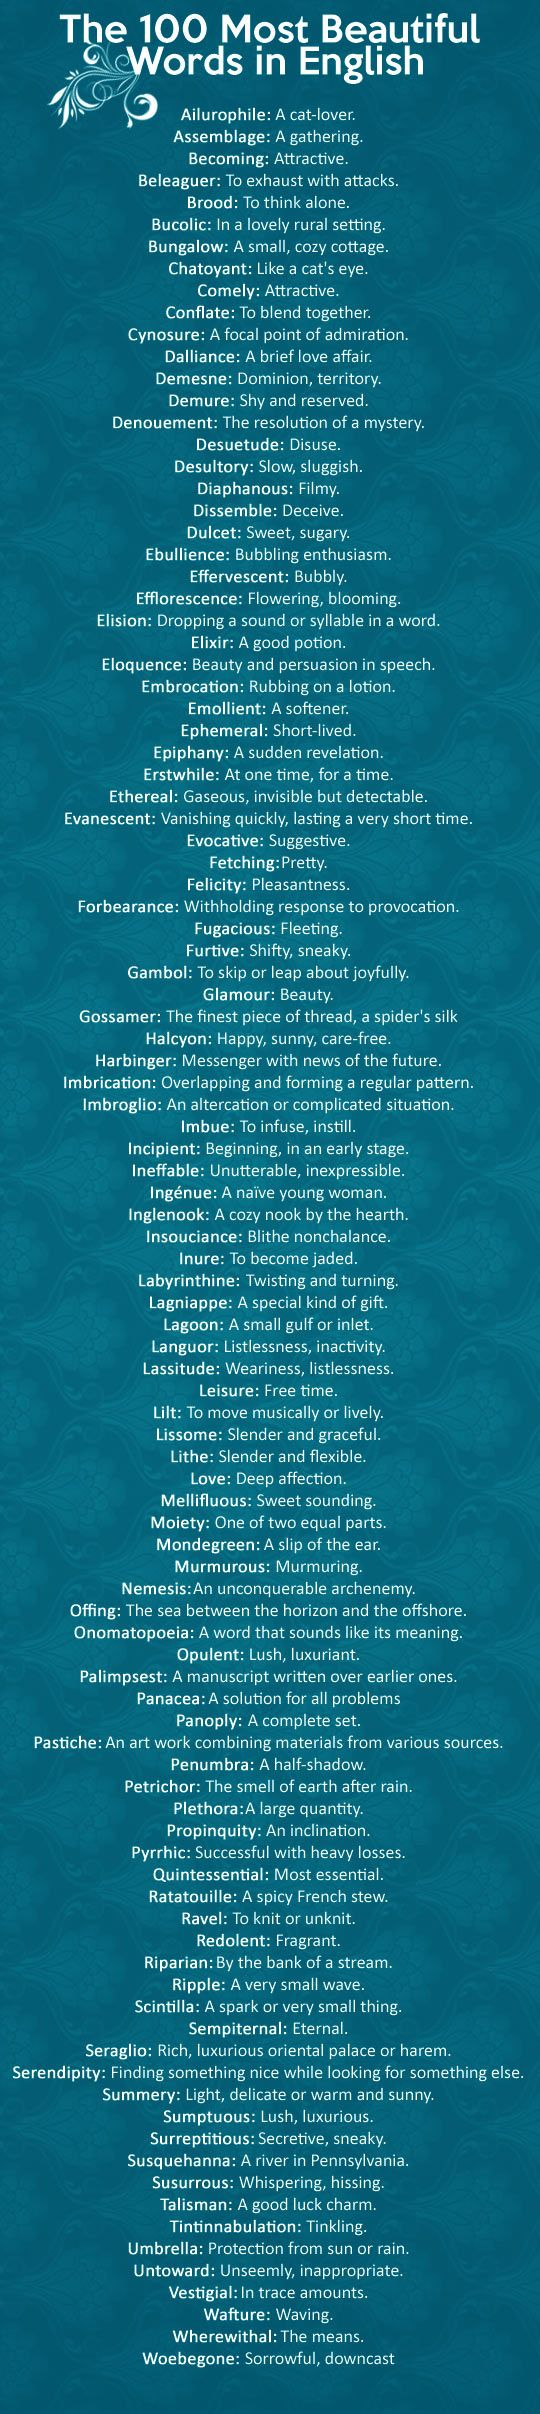 The most beautiful words in the English language via iwastesomuchtime #Words #Beautiful